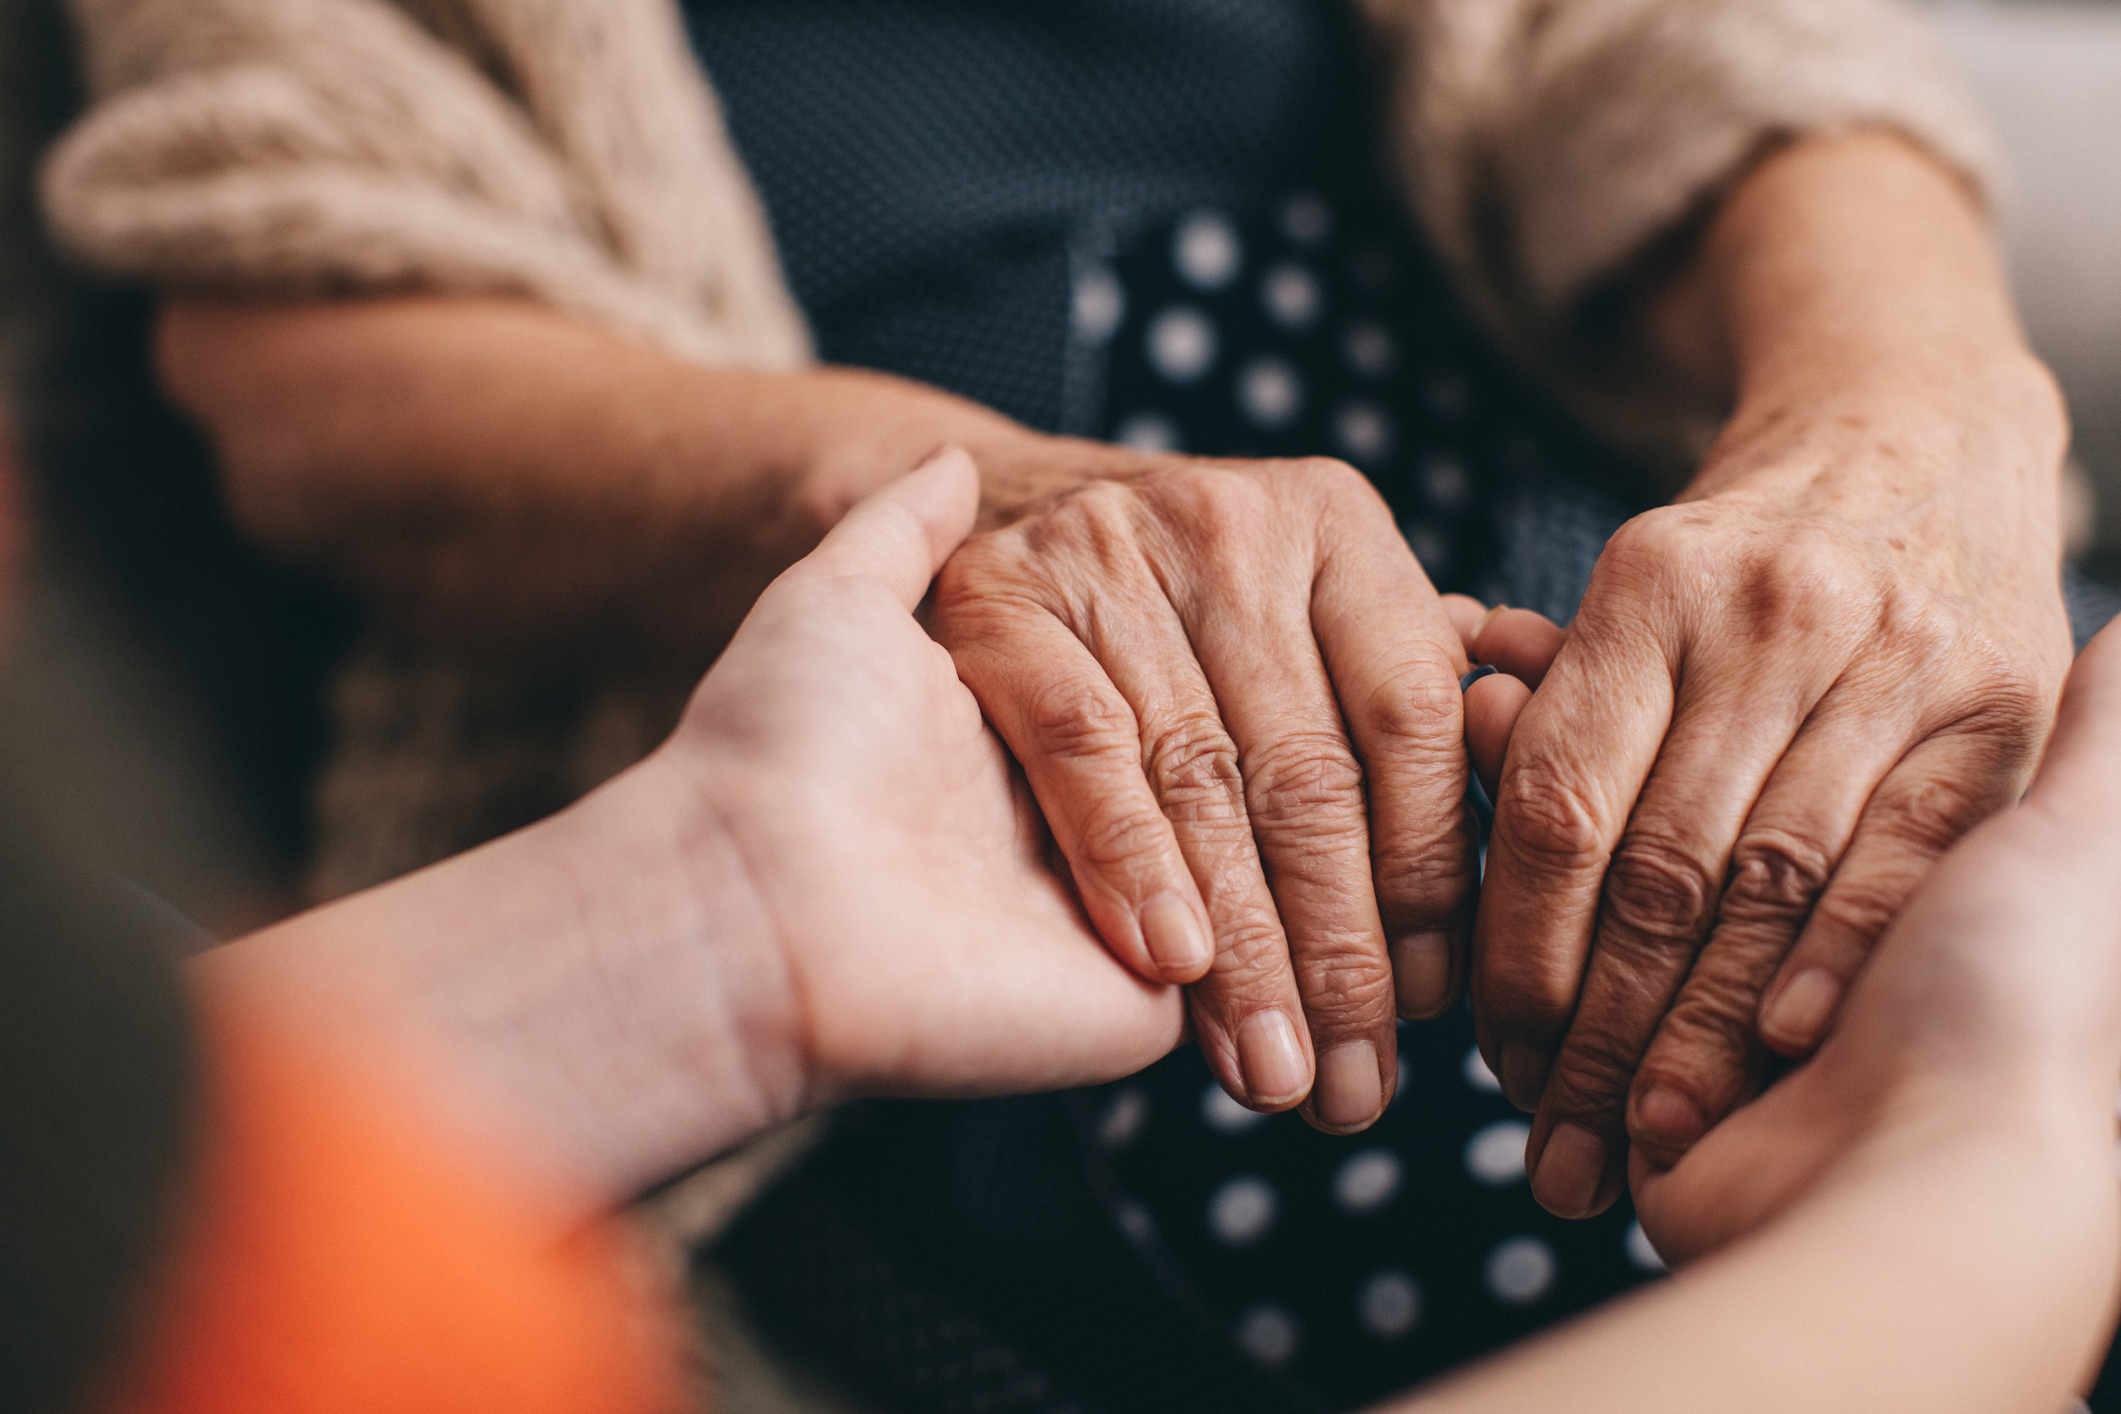 Hands of a young adult holding the hands of an older senior woman.